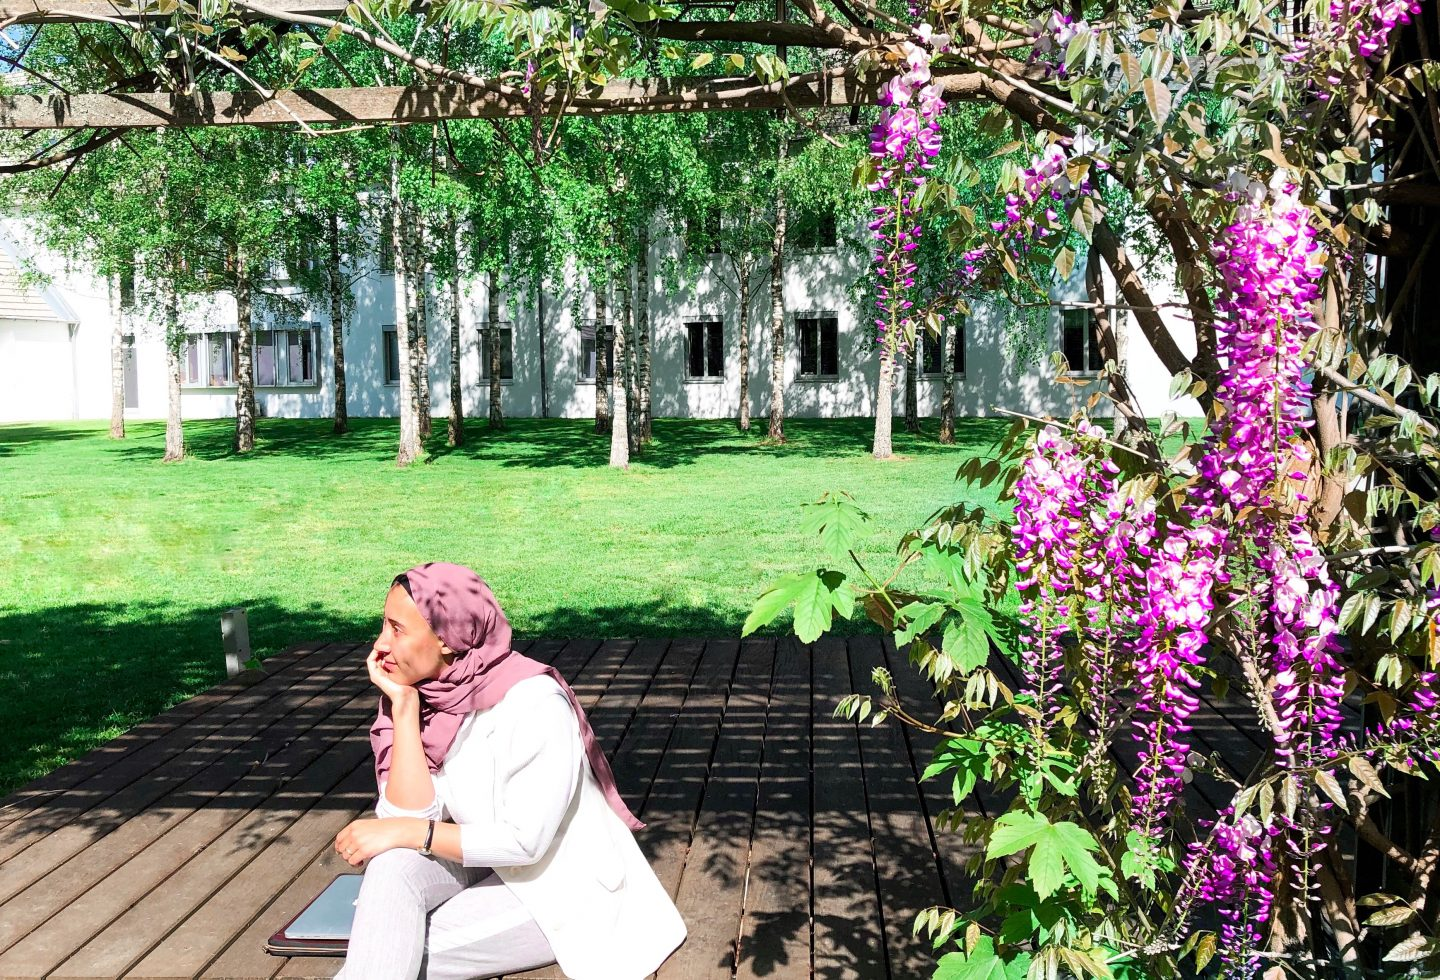 Sina Port, young woman with hijab at Adidas Headquarter sitting outdoors with flowers and office buildings around her